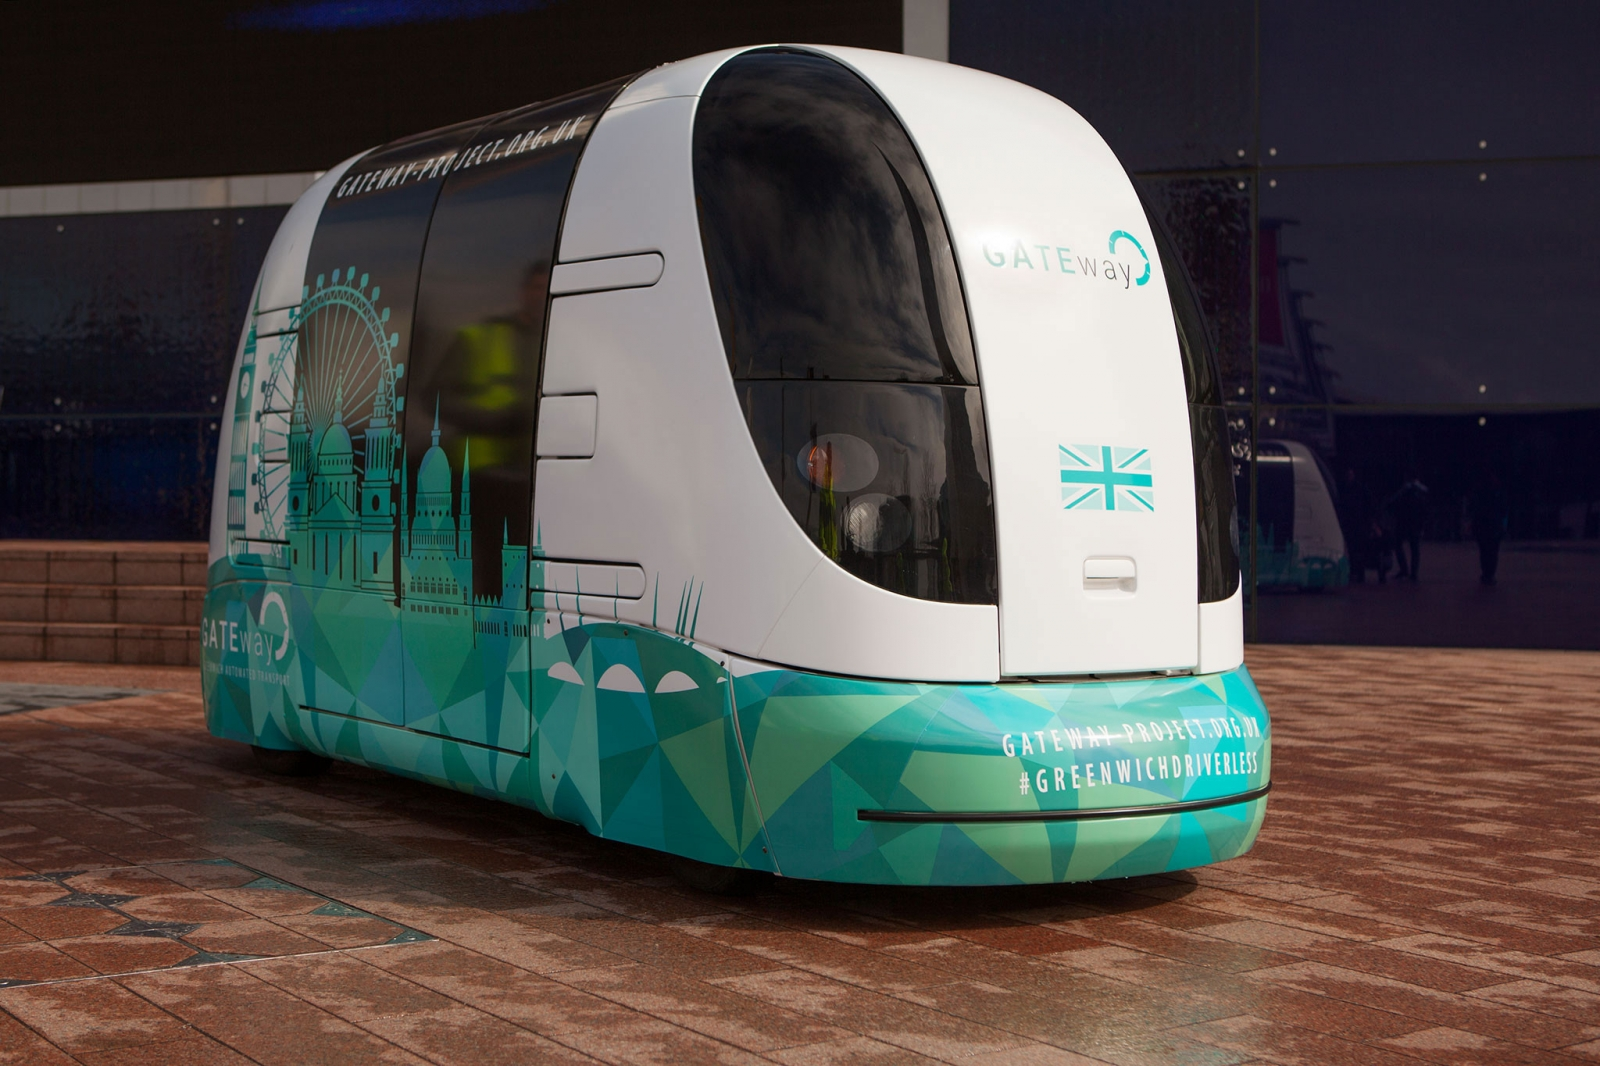 Driverless shuttle bus